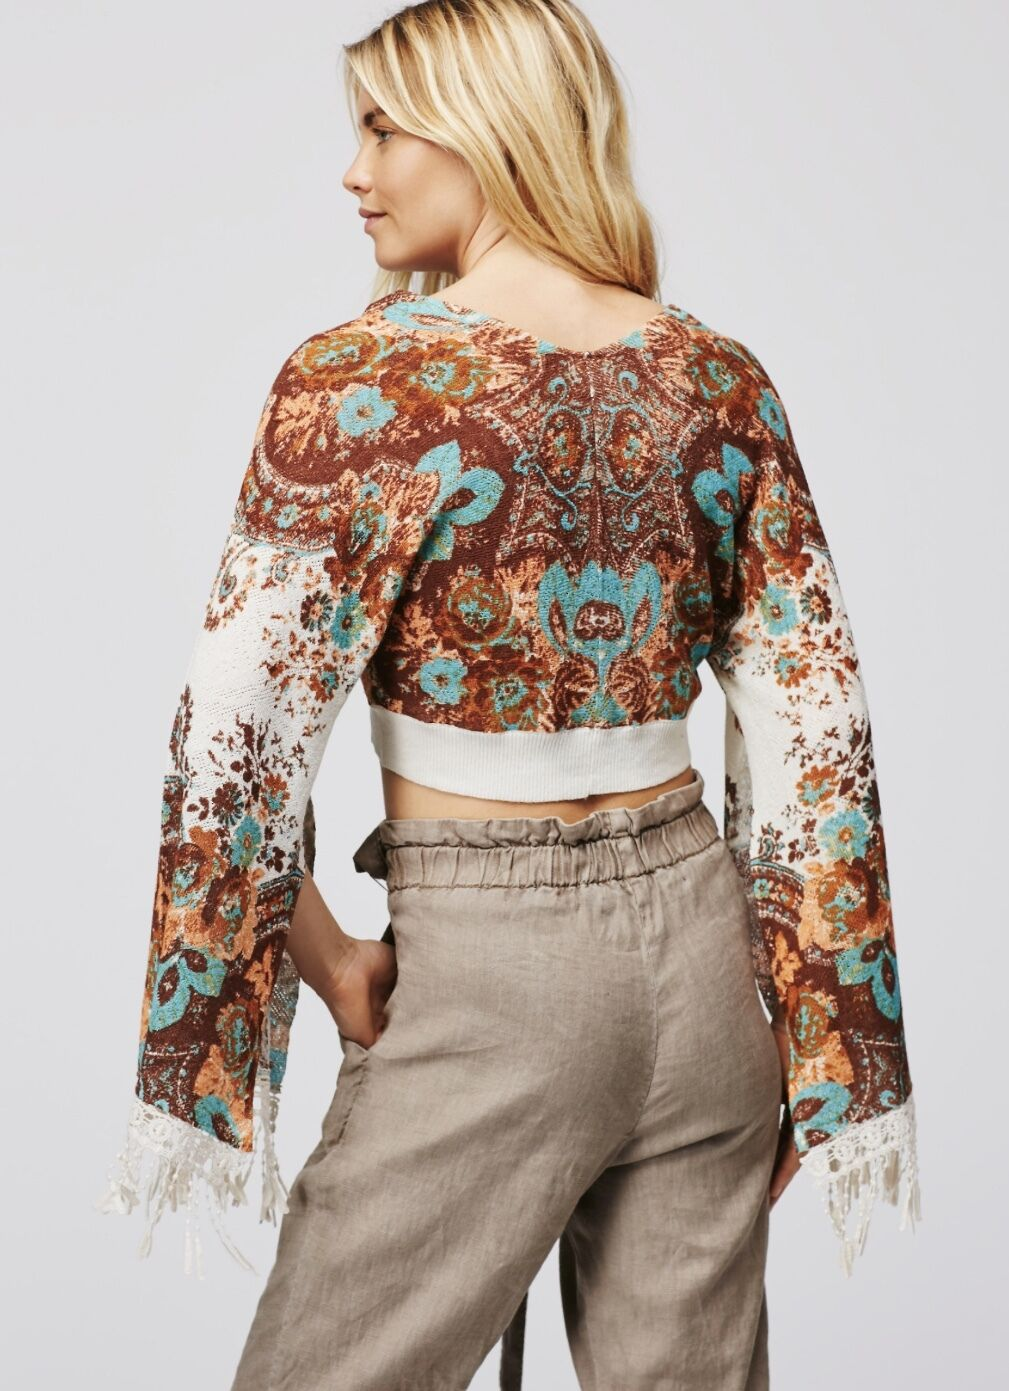 NEW Free People ivory ivory ivory brown turquoise Printed Cropped Sweater Bell Sleeves L b3e215